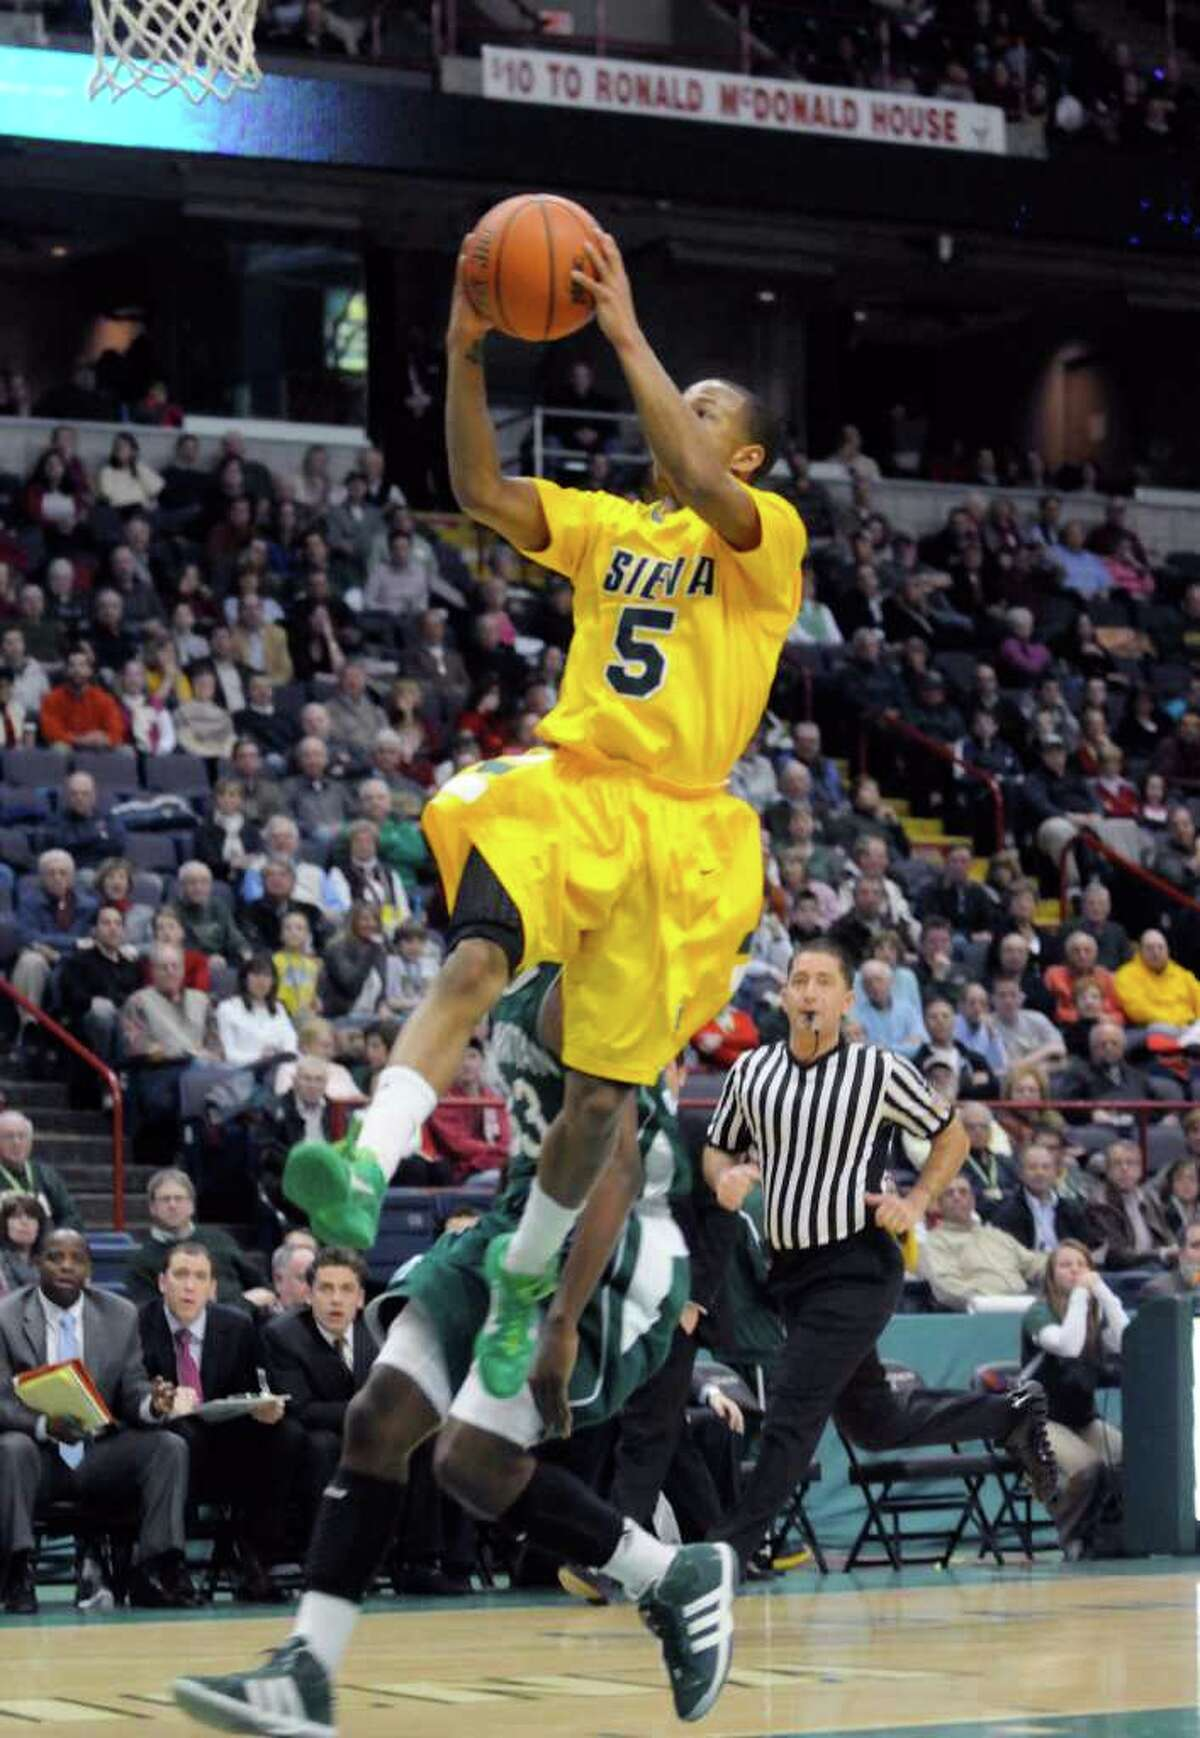 Siena's Evan Hymes goes in for a score during their mens college basketball game against Manhattan at the Times Union Center in Albany, New York Tuesday Feb.14, 2012.( Michael P. Farrell/Times Union)